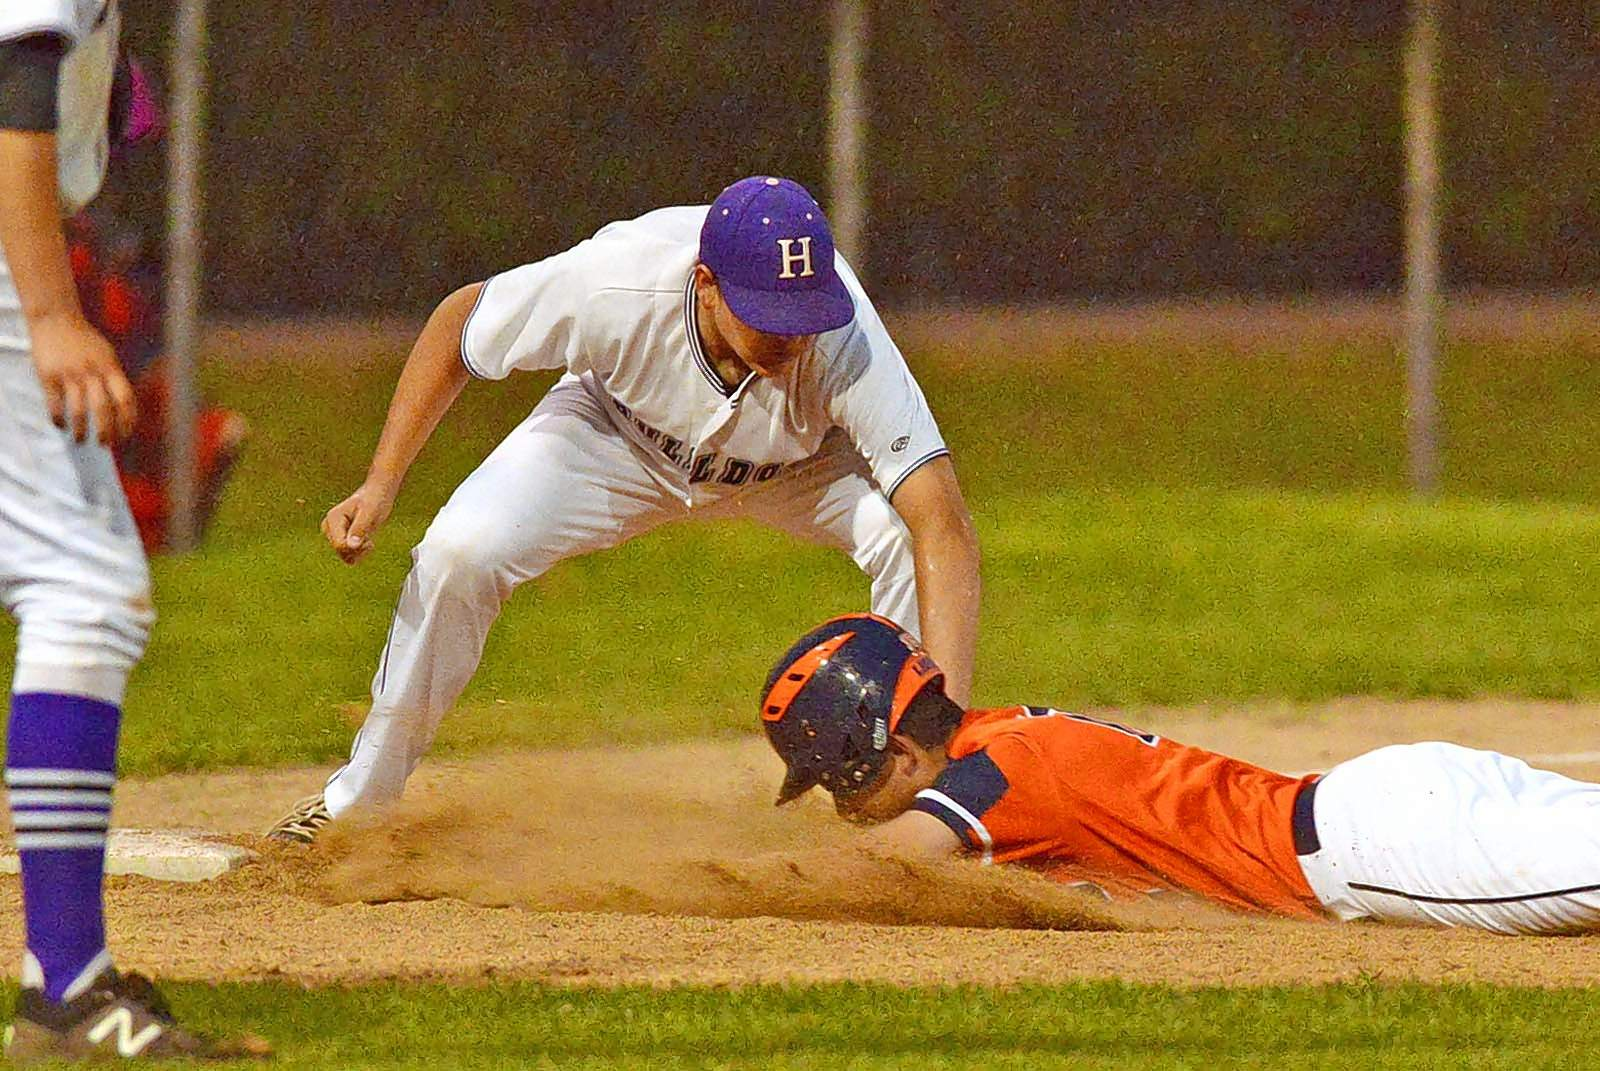 photos by Jeff Jones Harrisburg  junior Dalton Lambert applies the tag and the out in game action Wednesday against Carterville in sectional tournament play at Benton.